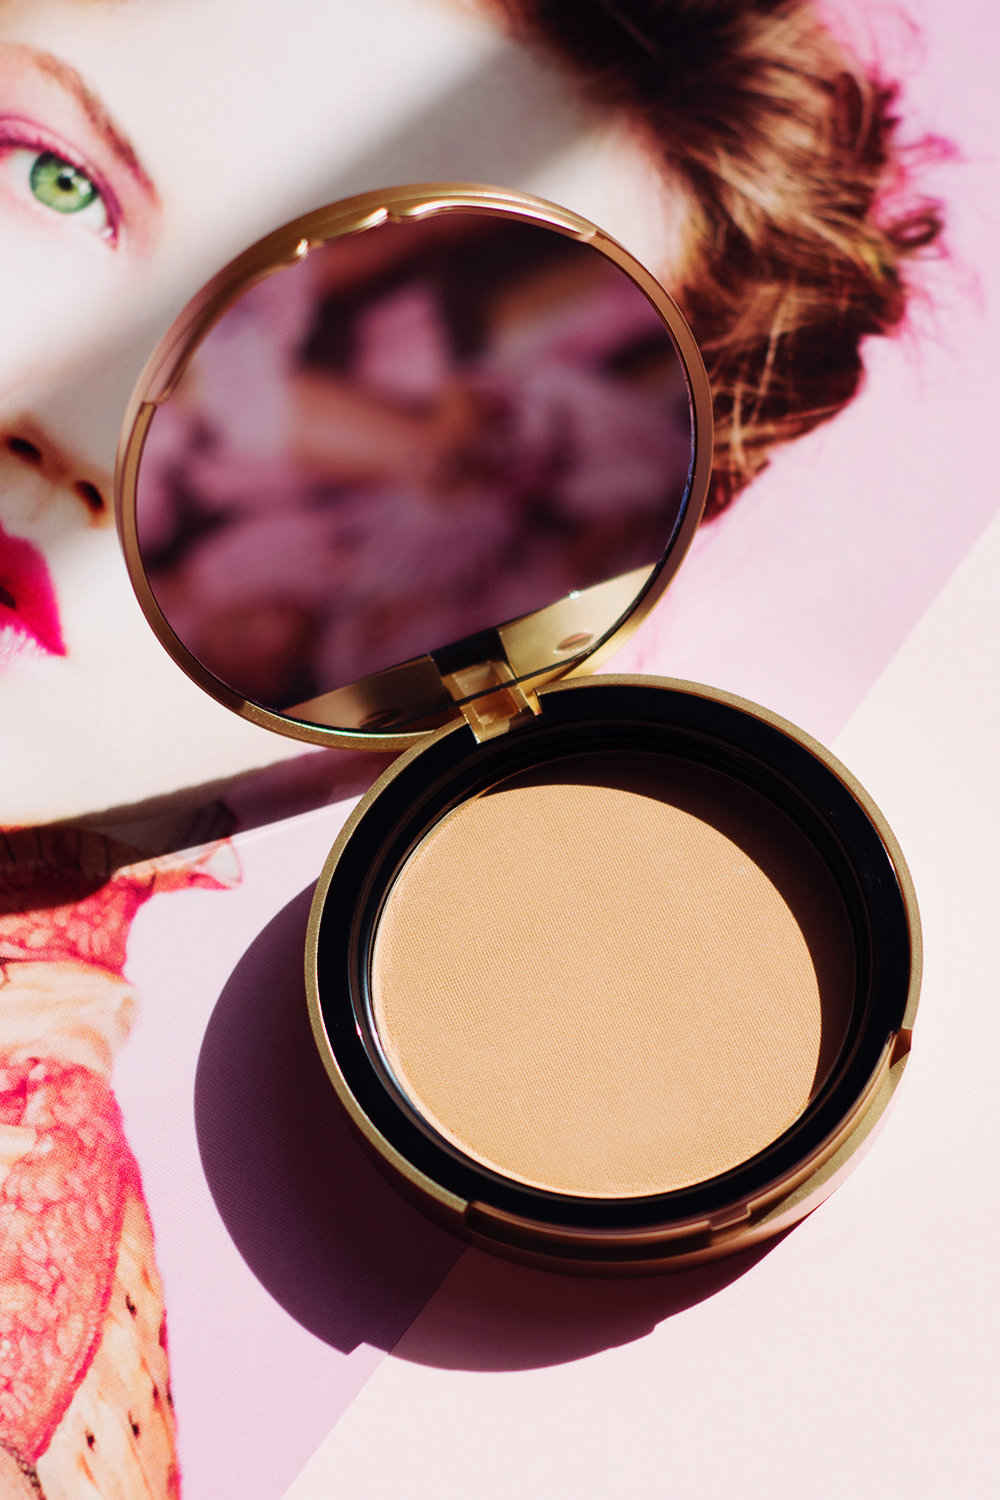 too-faced-milk-chocolate-soleil-bronzer-review.jpg